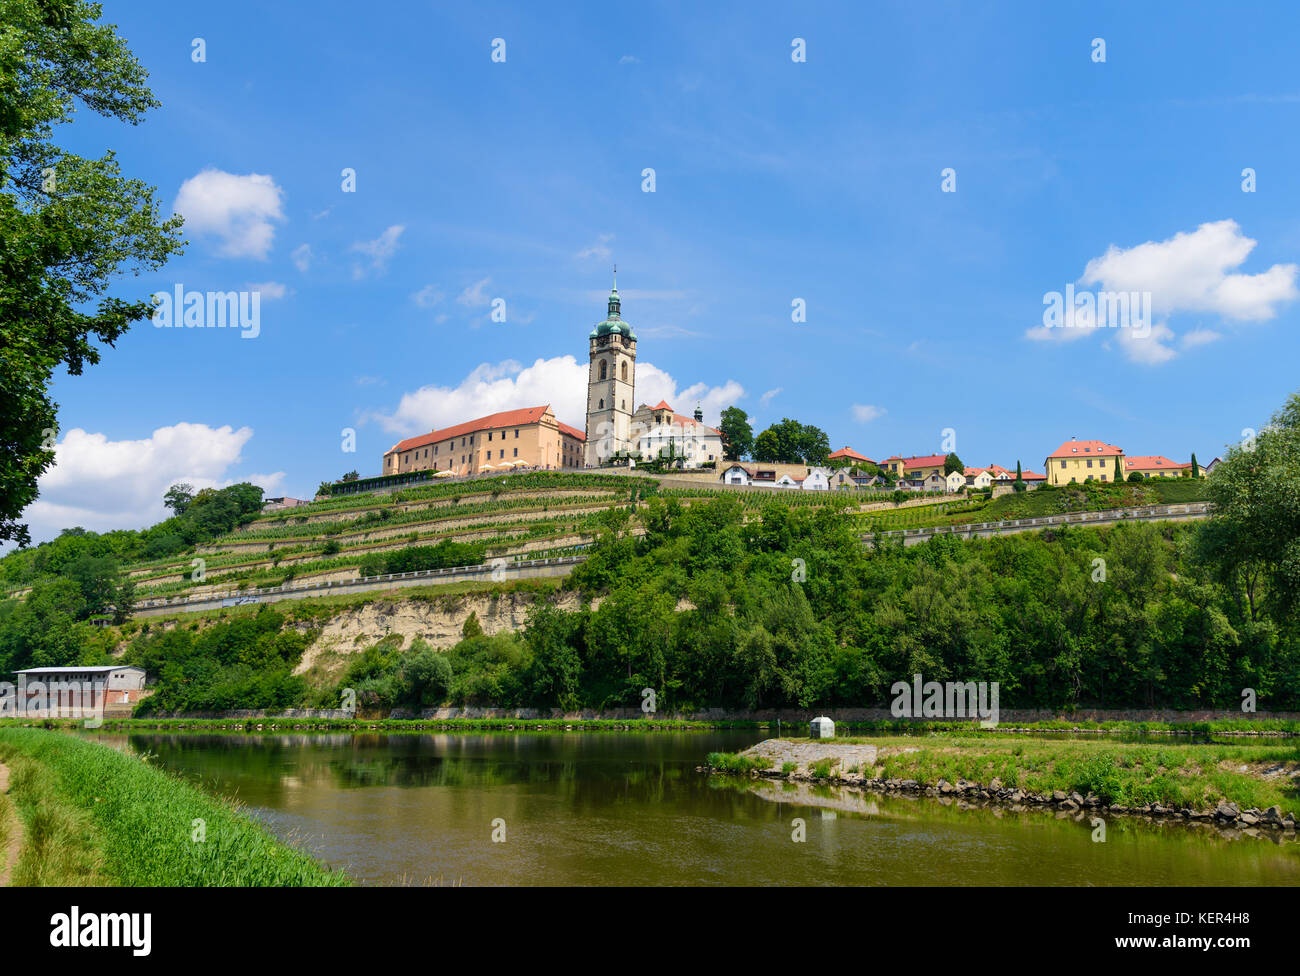 The historic Mělník castle and church tower of St. Peter and Paul at the confluence of the Vltava (Moldau) - Stock Image